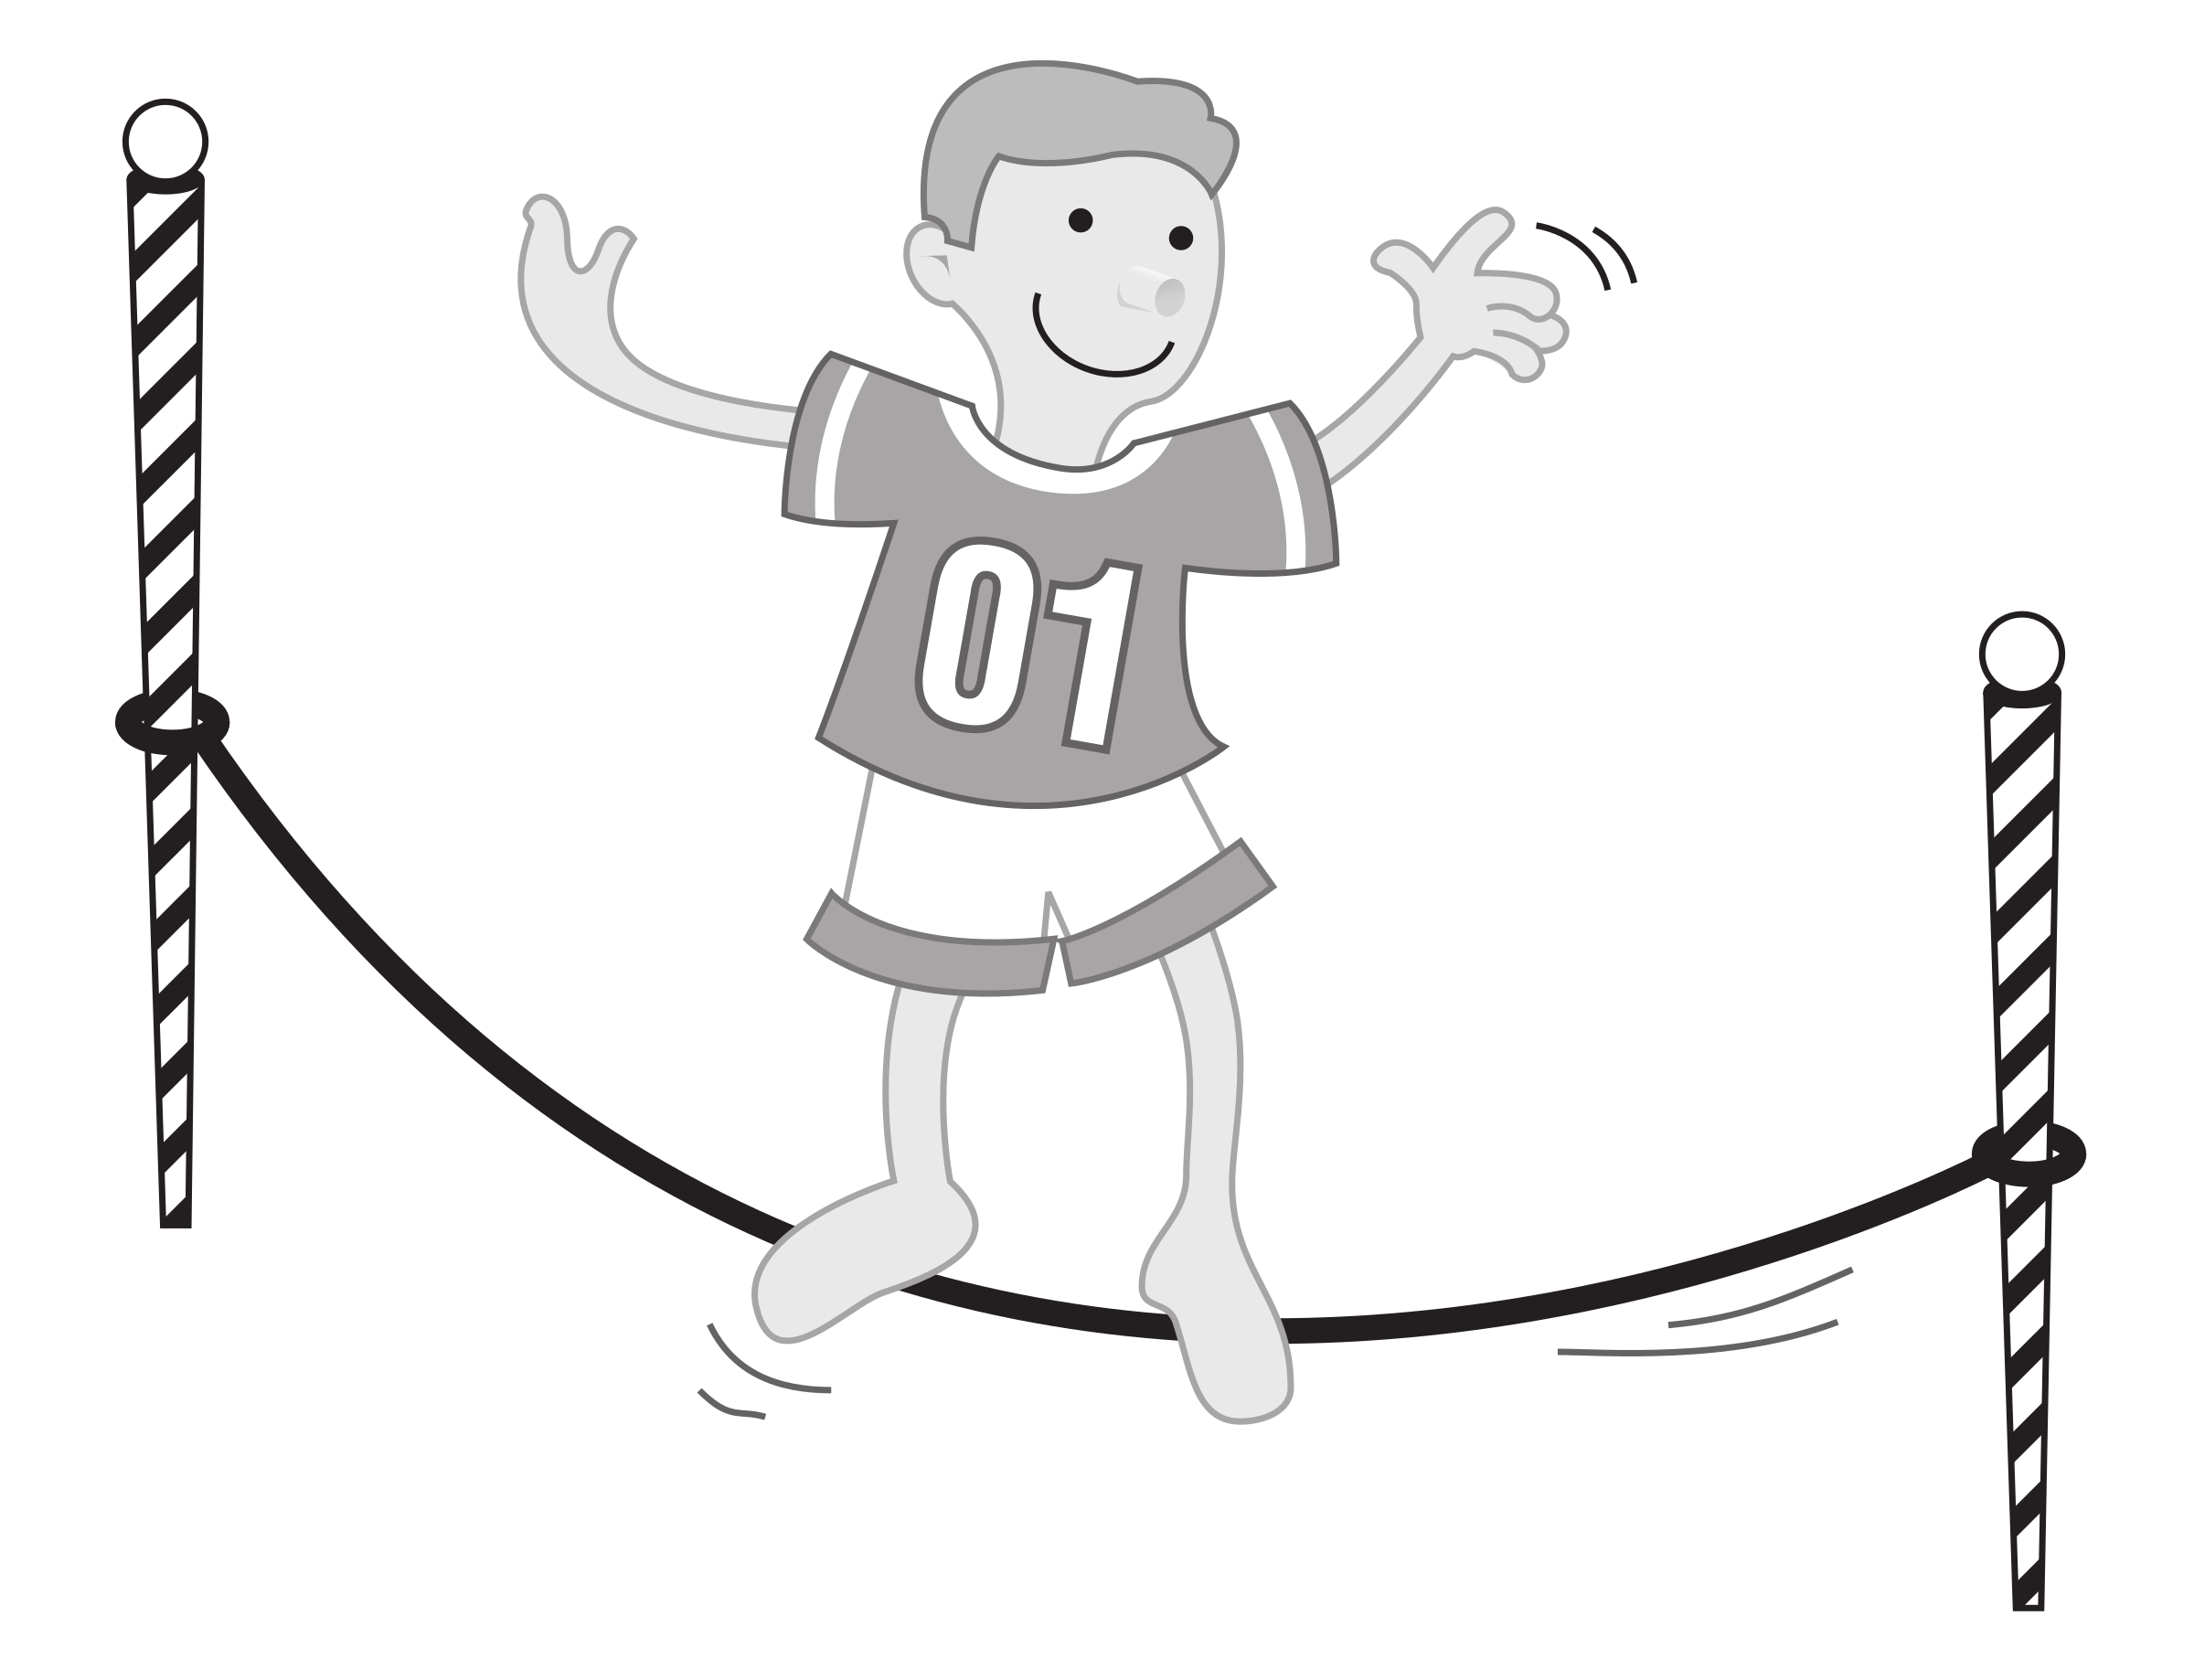 Government clipart kid. Balancing on a string